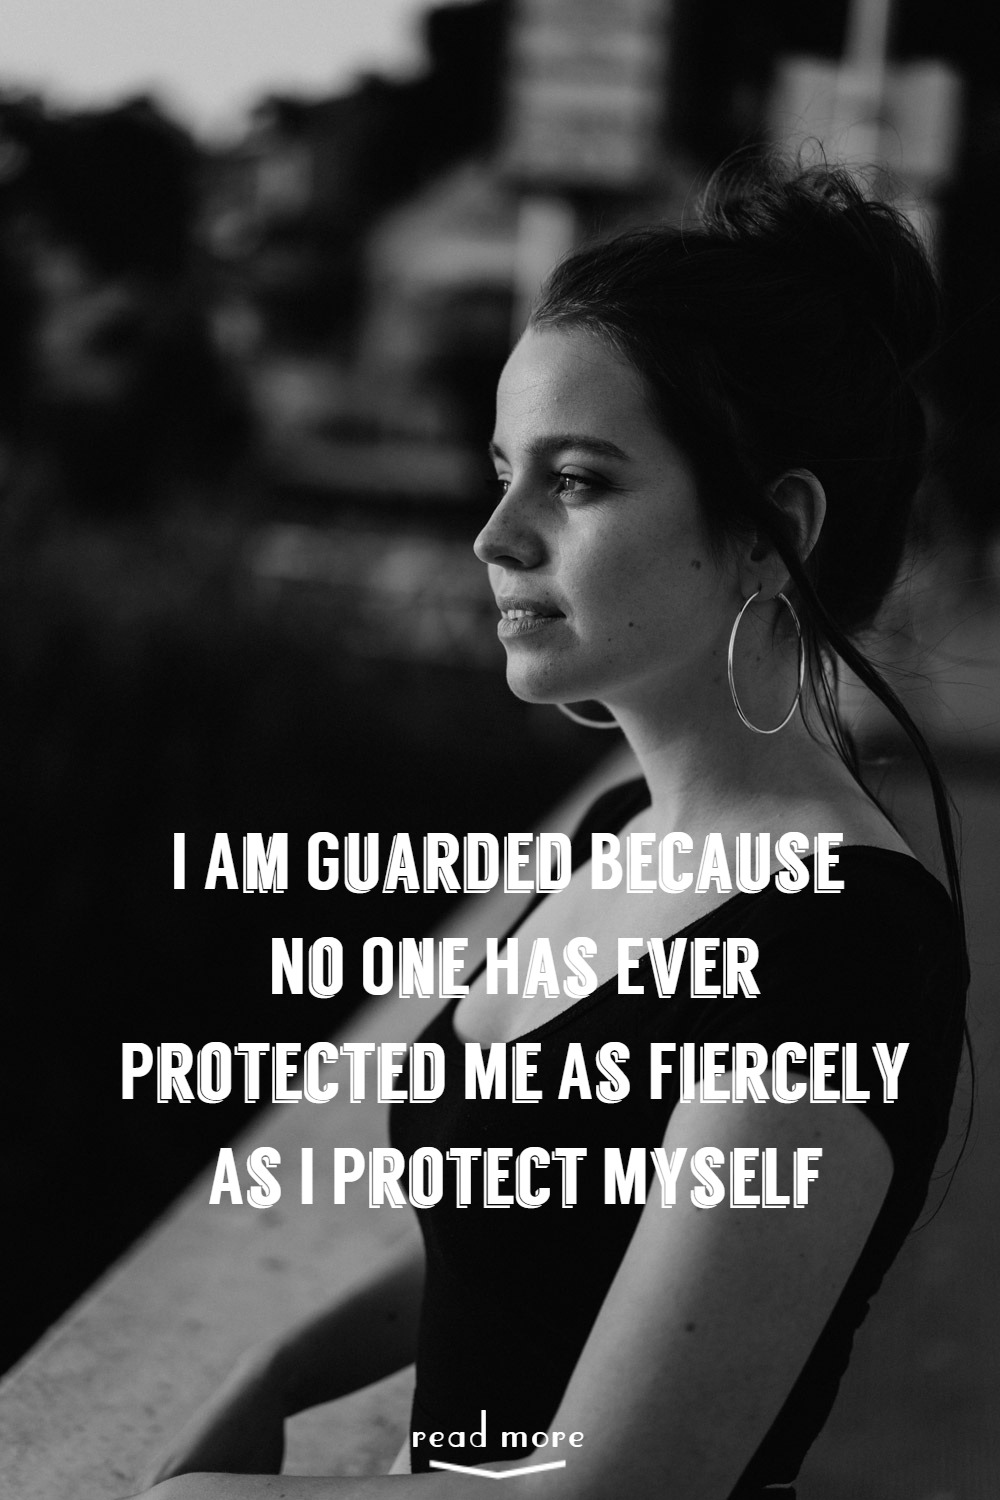 I've built my walls high and I know it will take a lot for someone to bring them down. I've become so fiercely guarded and protective of myself that sometimes I am scared that I won't allow anyone near my heart ever again.